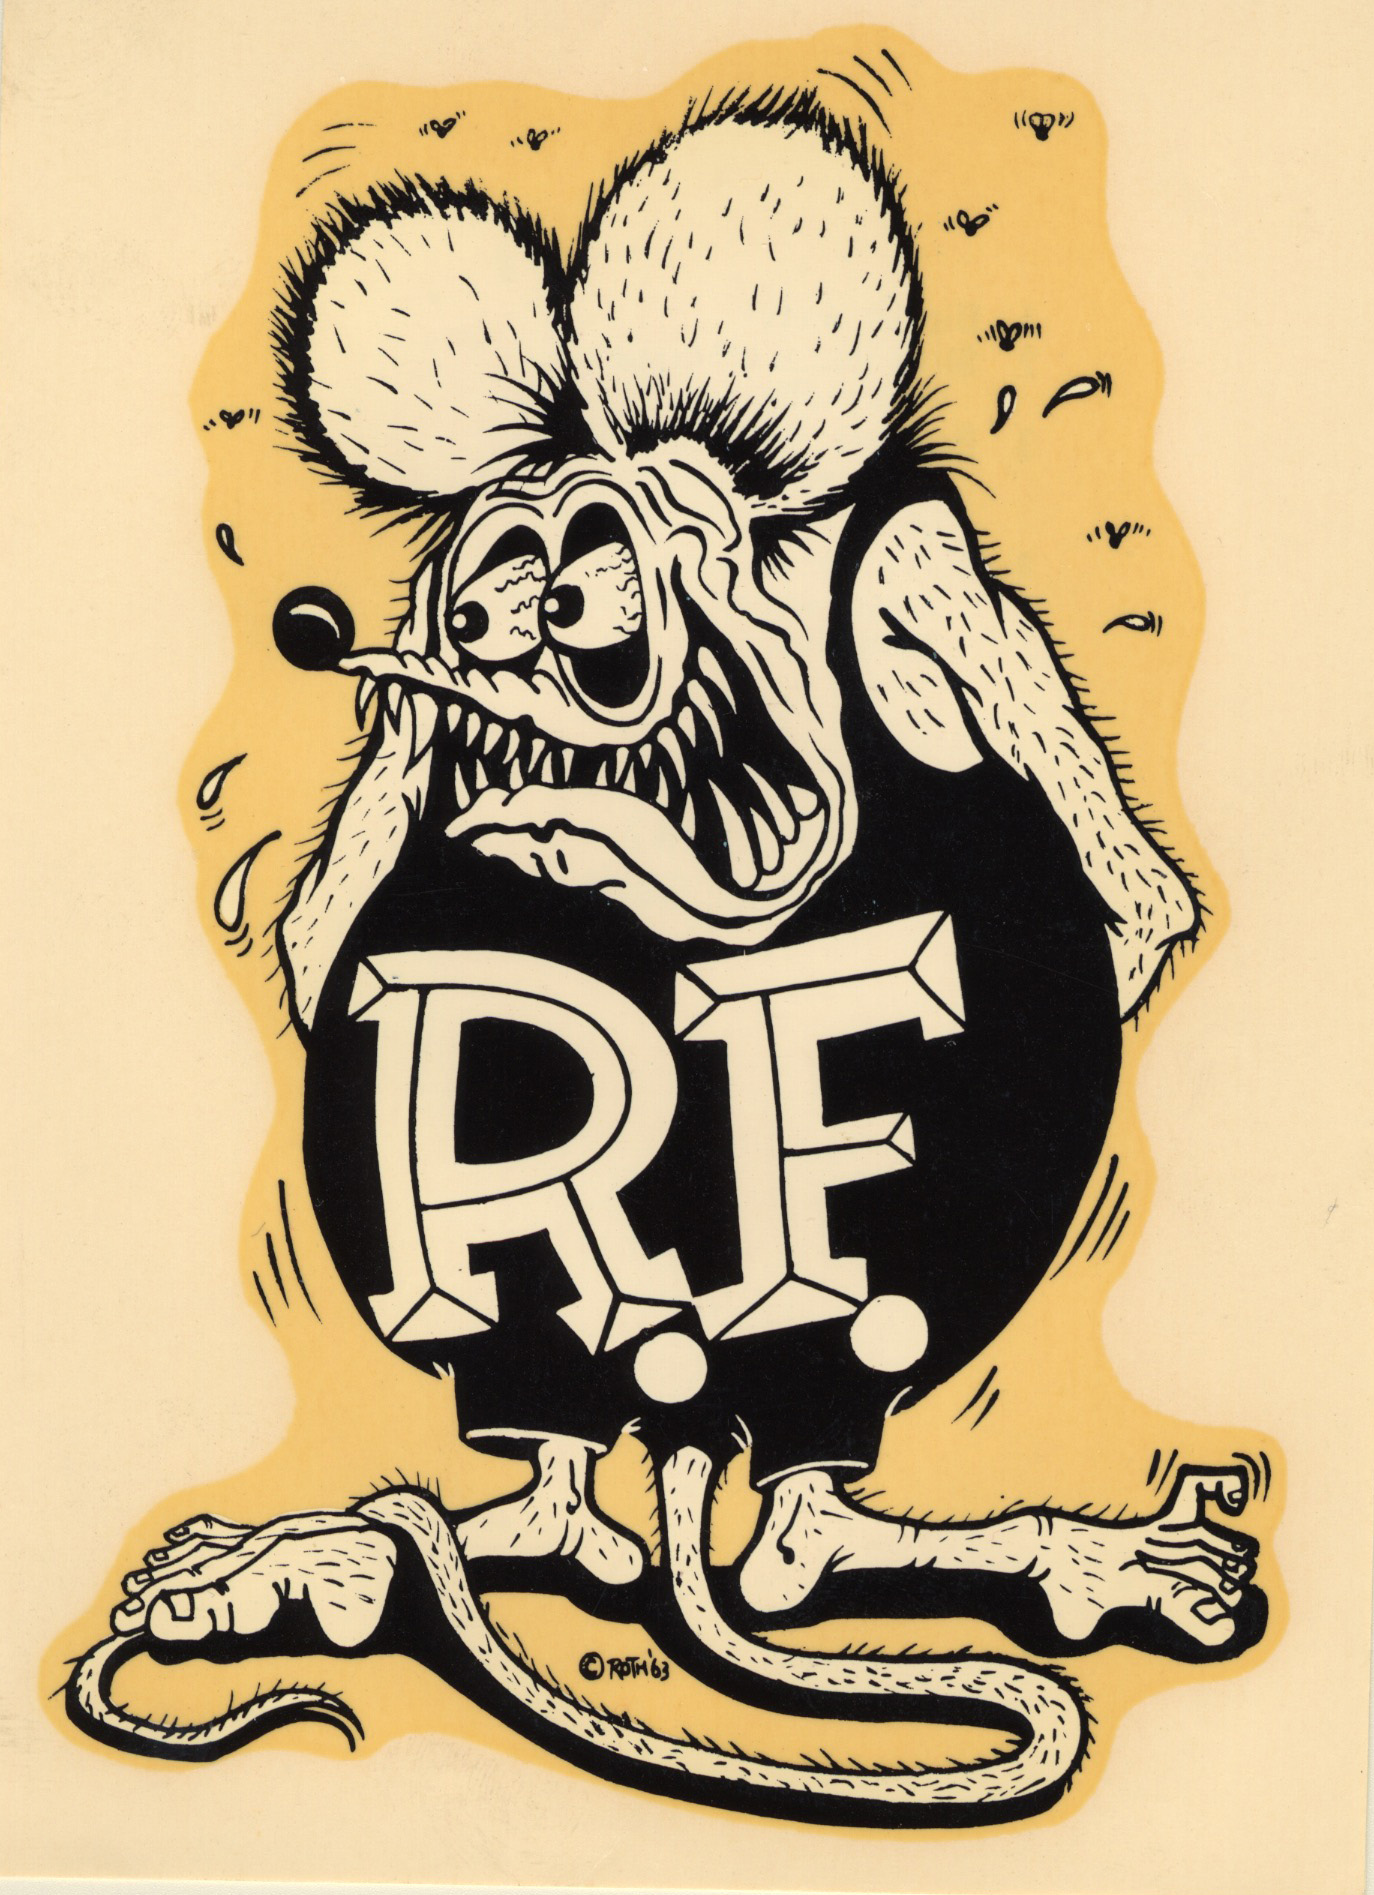 Ed Big Daddy Roth started a phenomenom in the 70's with monster decals.